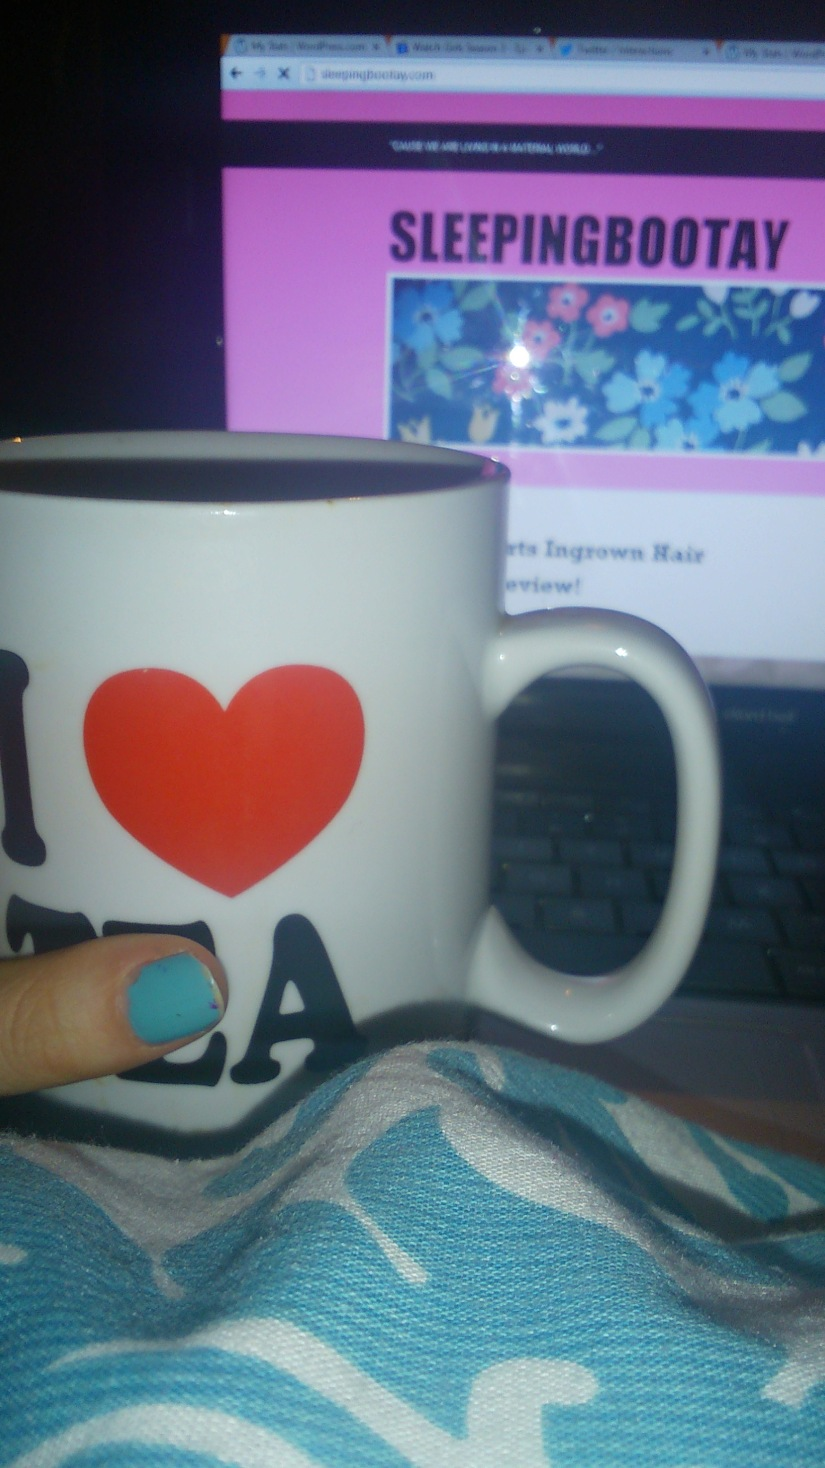 Tea, chats and blogging